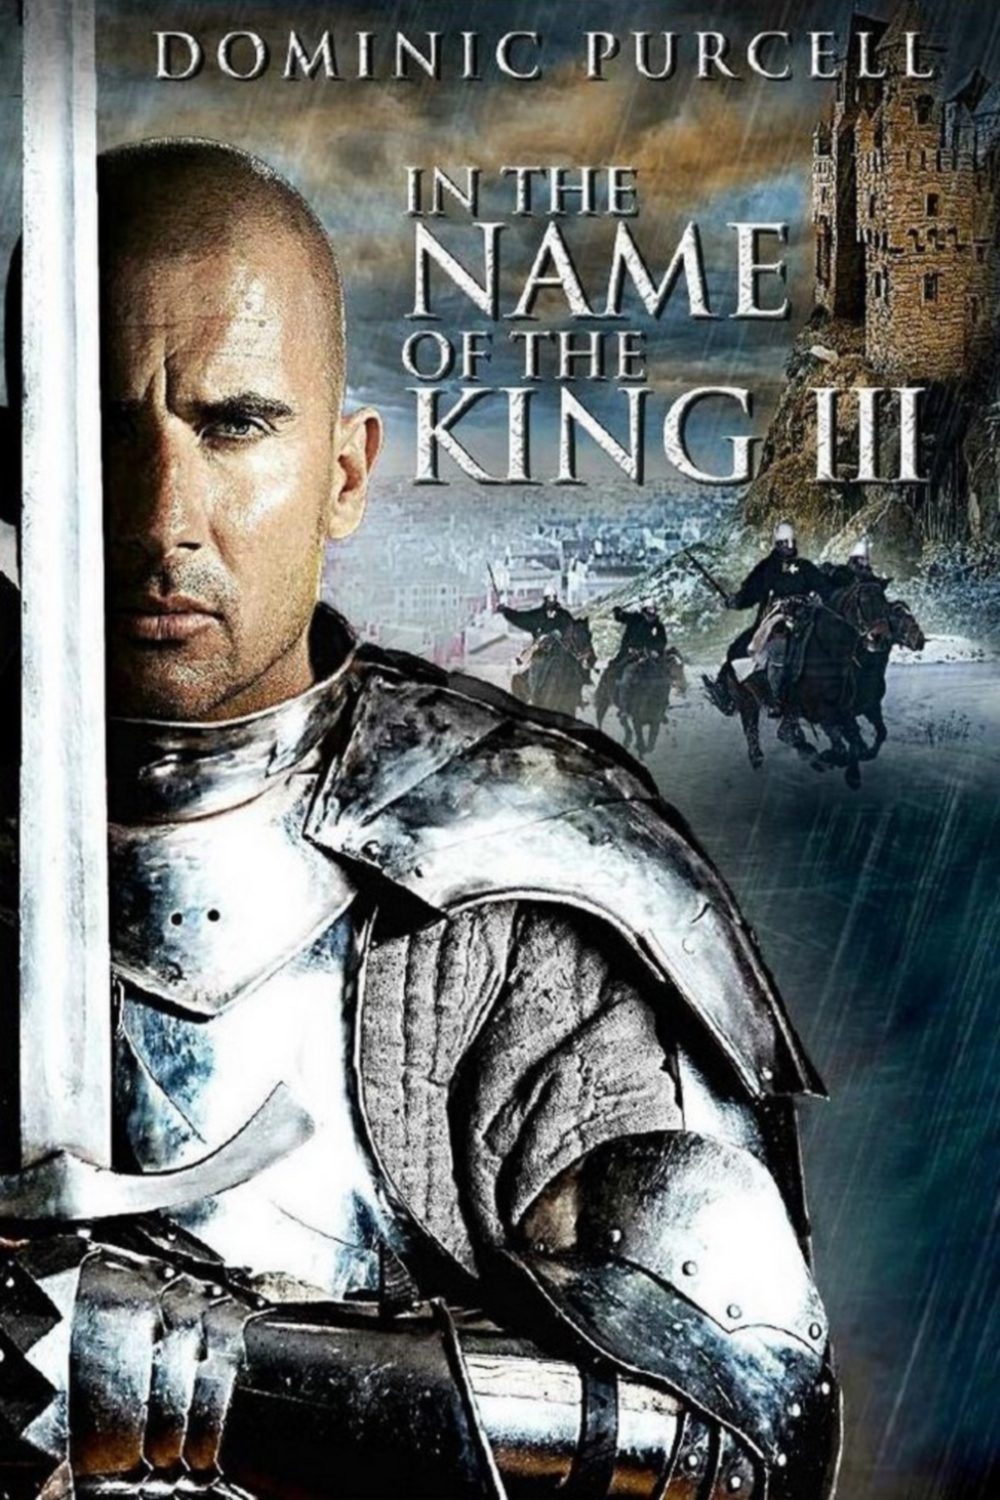 In the Name of the King: The Last Mission (2014) ศึกนักรบกองพันปีศาจ 3